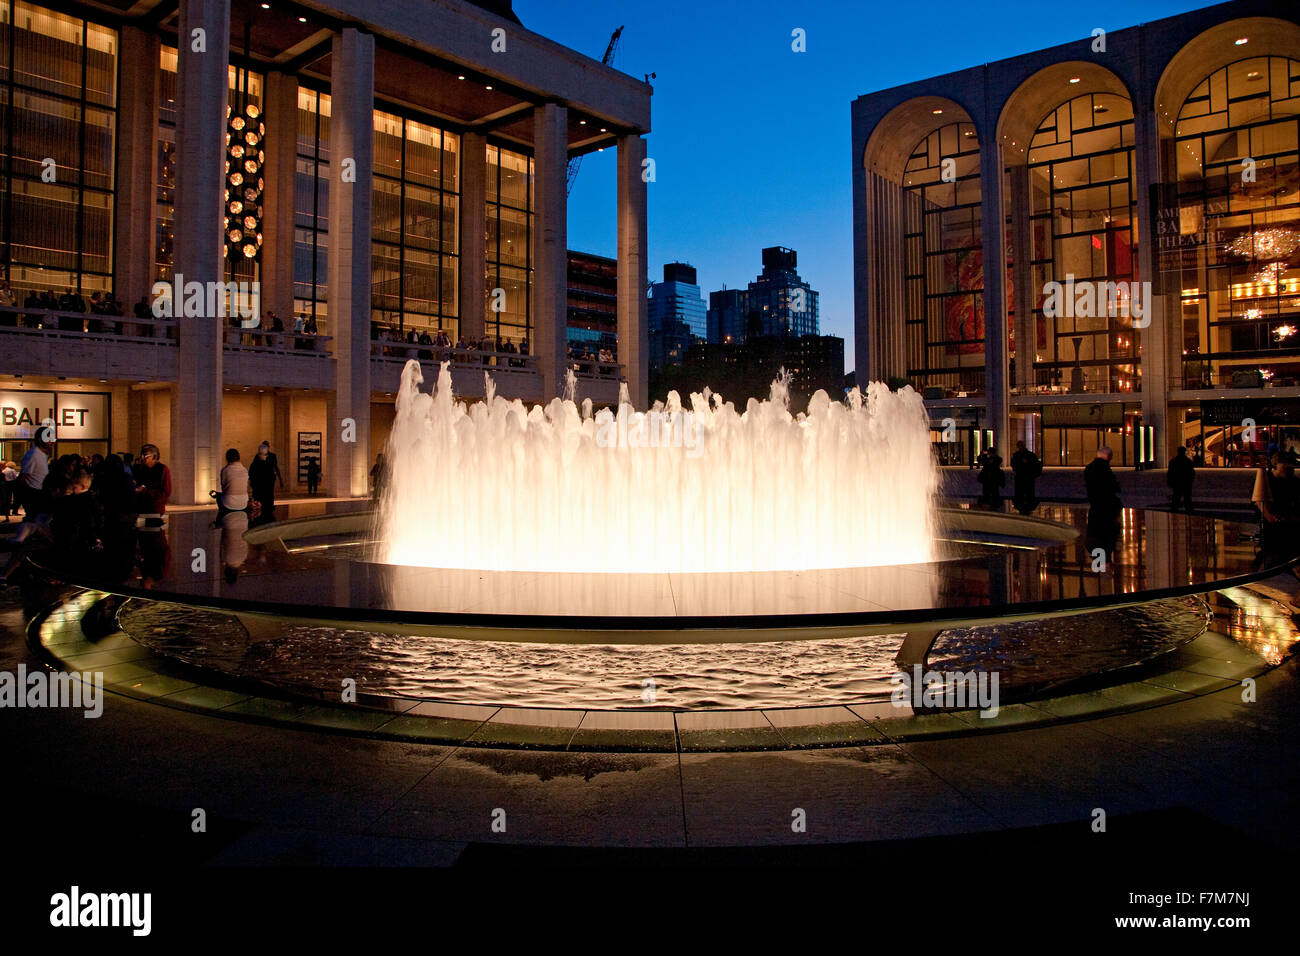 Lincoln Center at dusk and water fountains, New York, New York - Stock Image